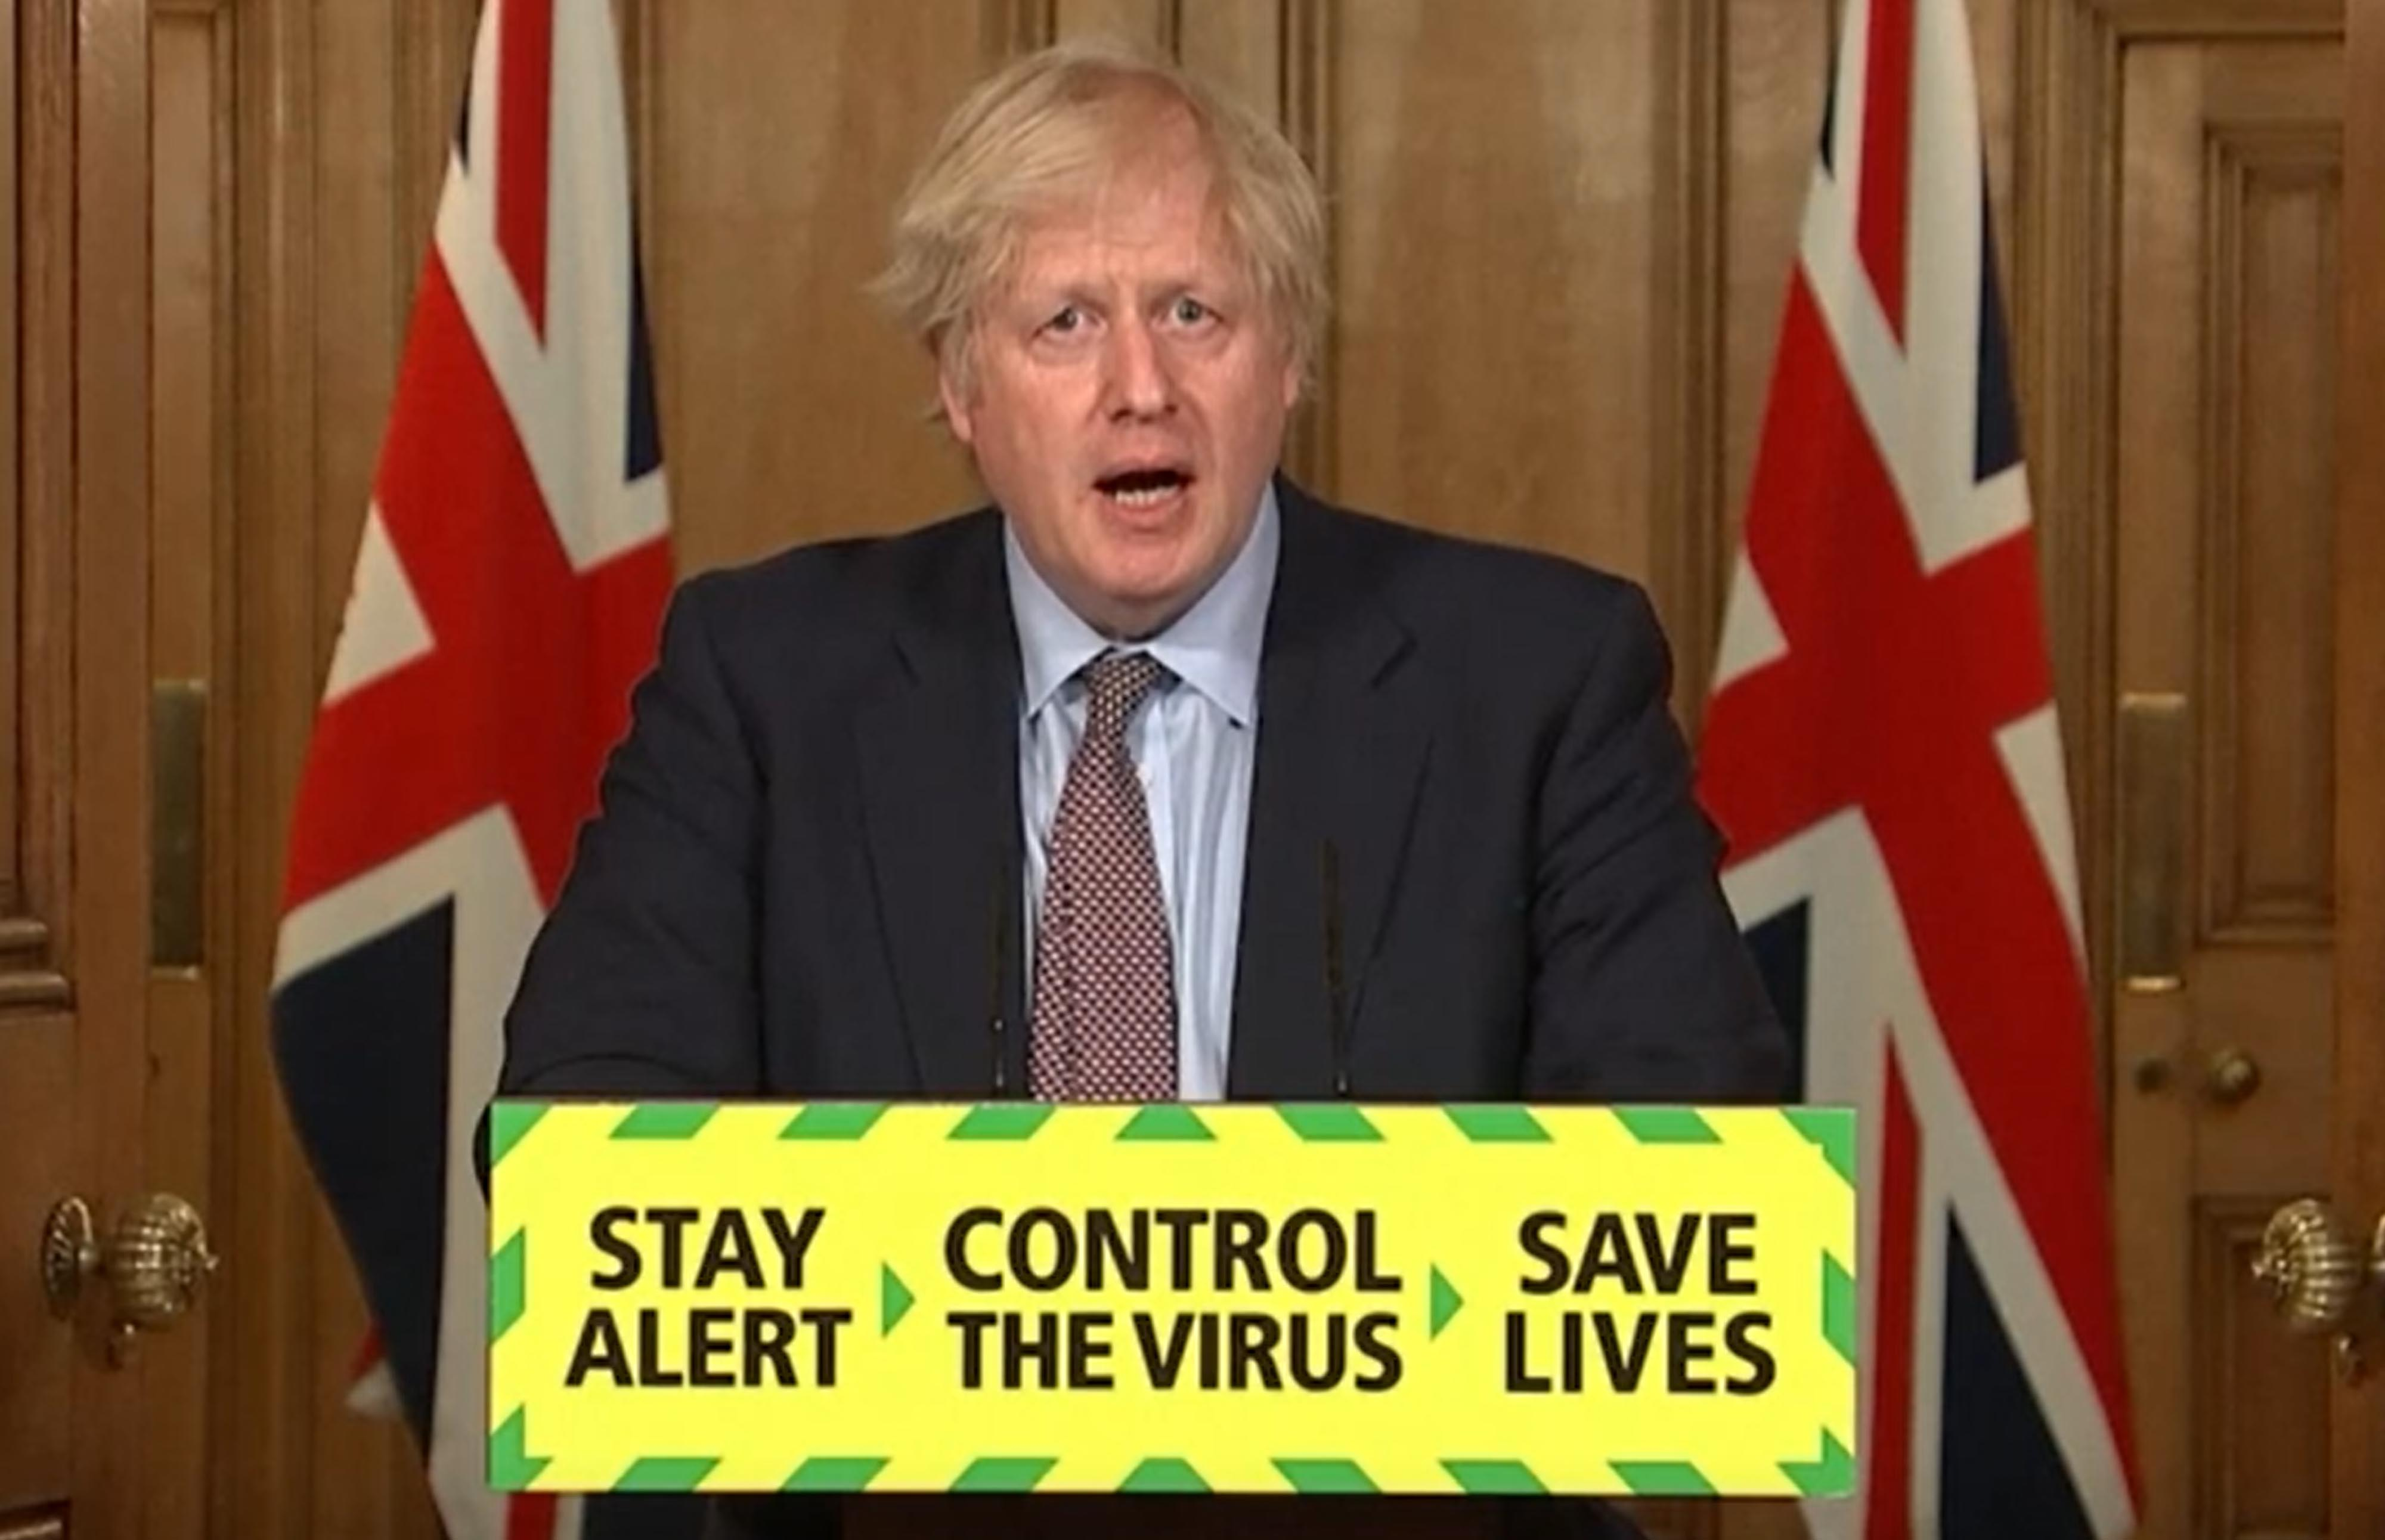 A Channel 4 Dispatches programme questioned the government's response to the coronavirus crisis. (Picture: PA)